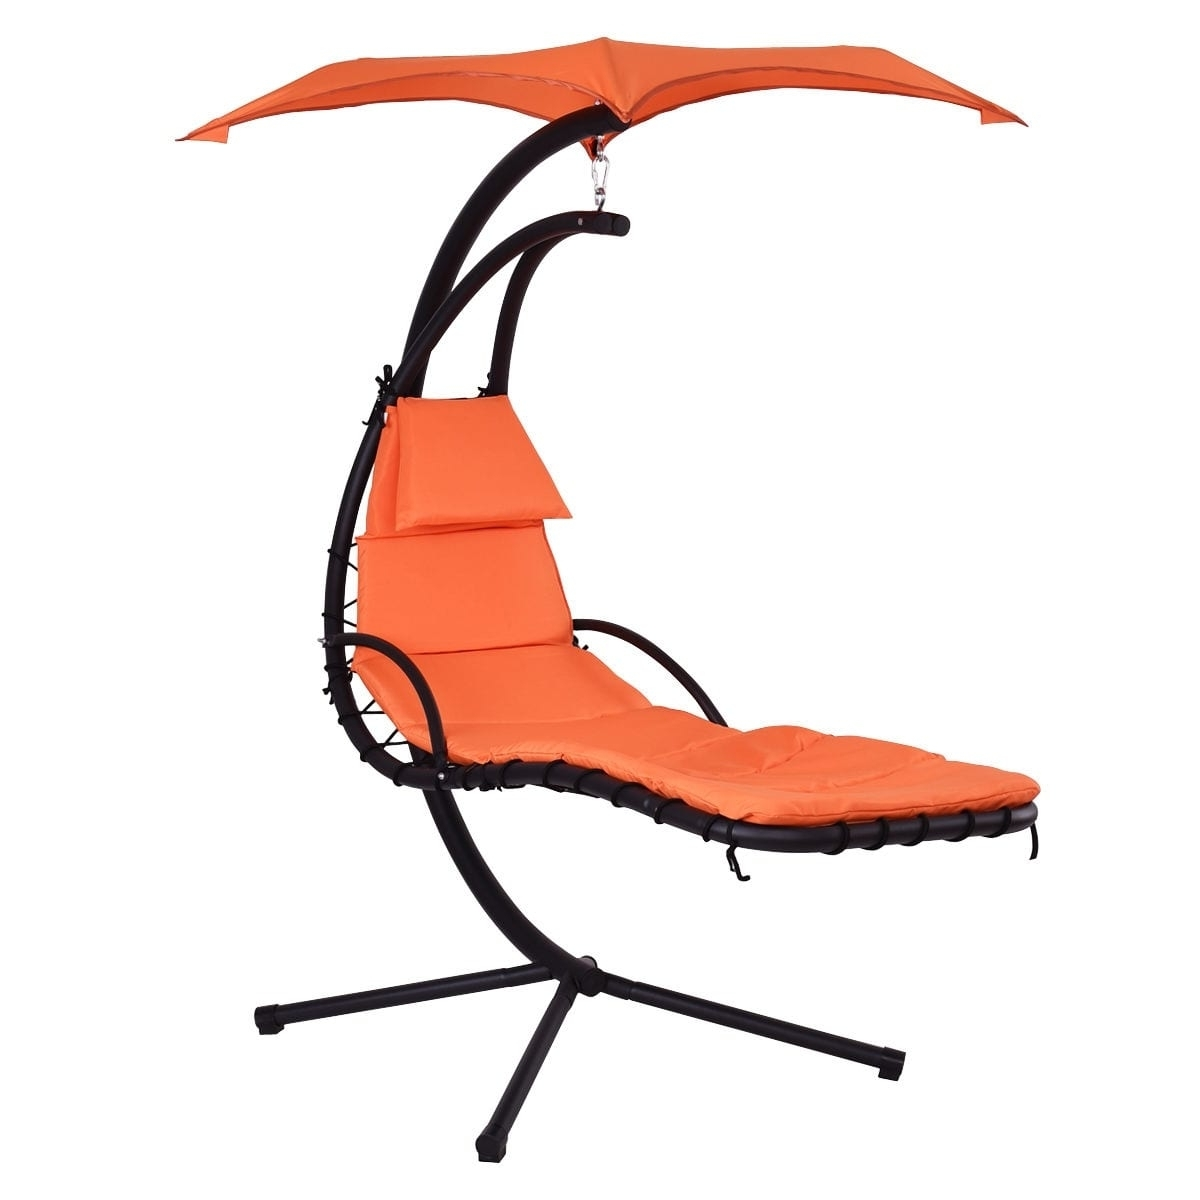 Costway Hanging Chaise Lounge Chair Arc Stand Air Porch Swing For Widely Used Hanging Chaise Lounge Chairs (View 4 of 15)